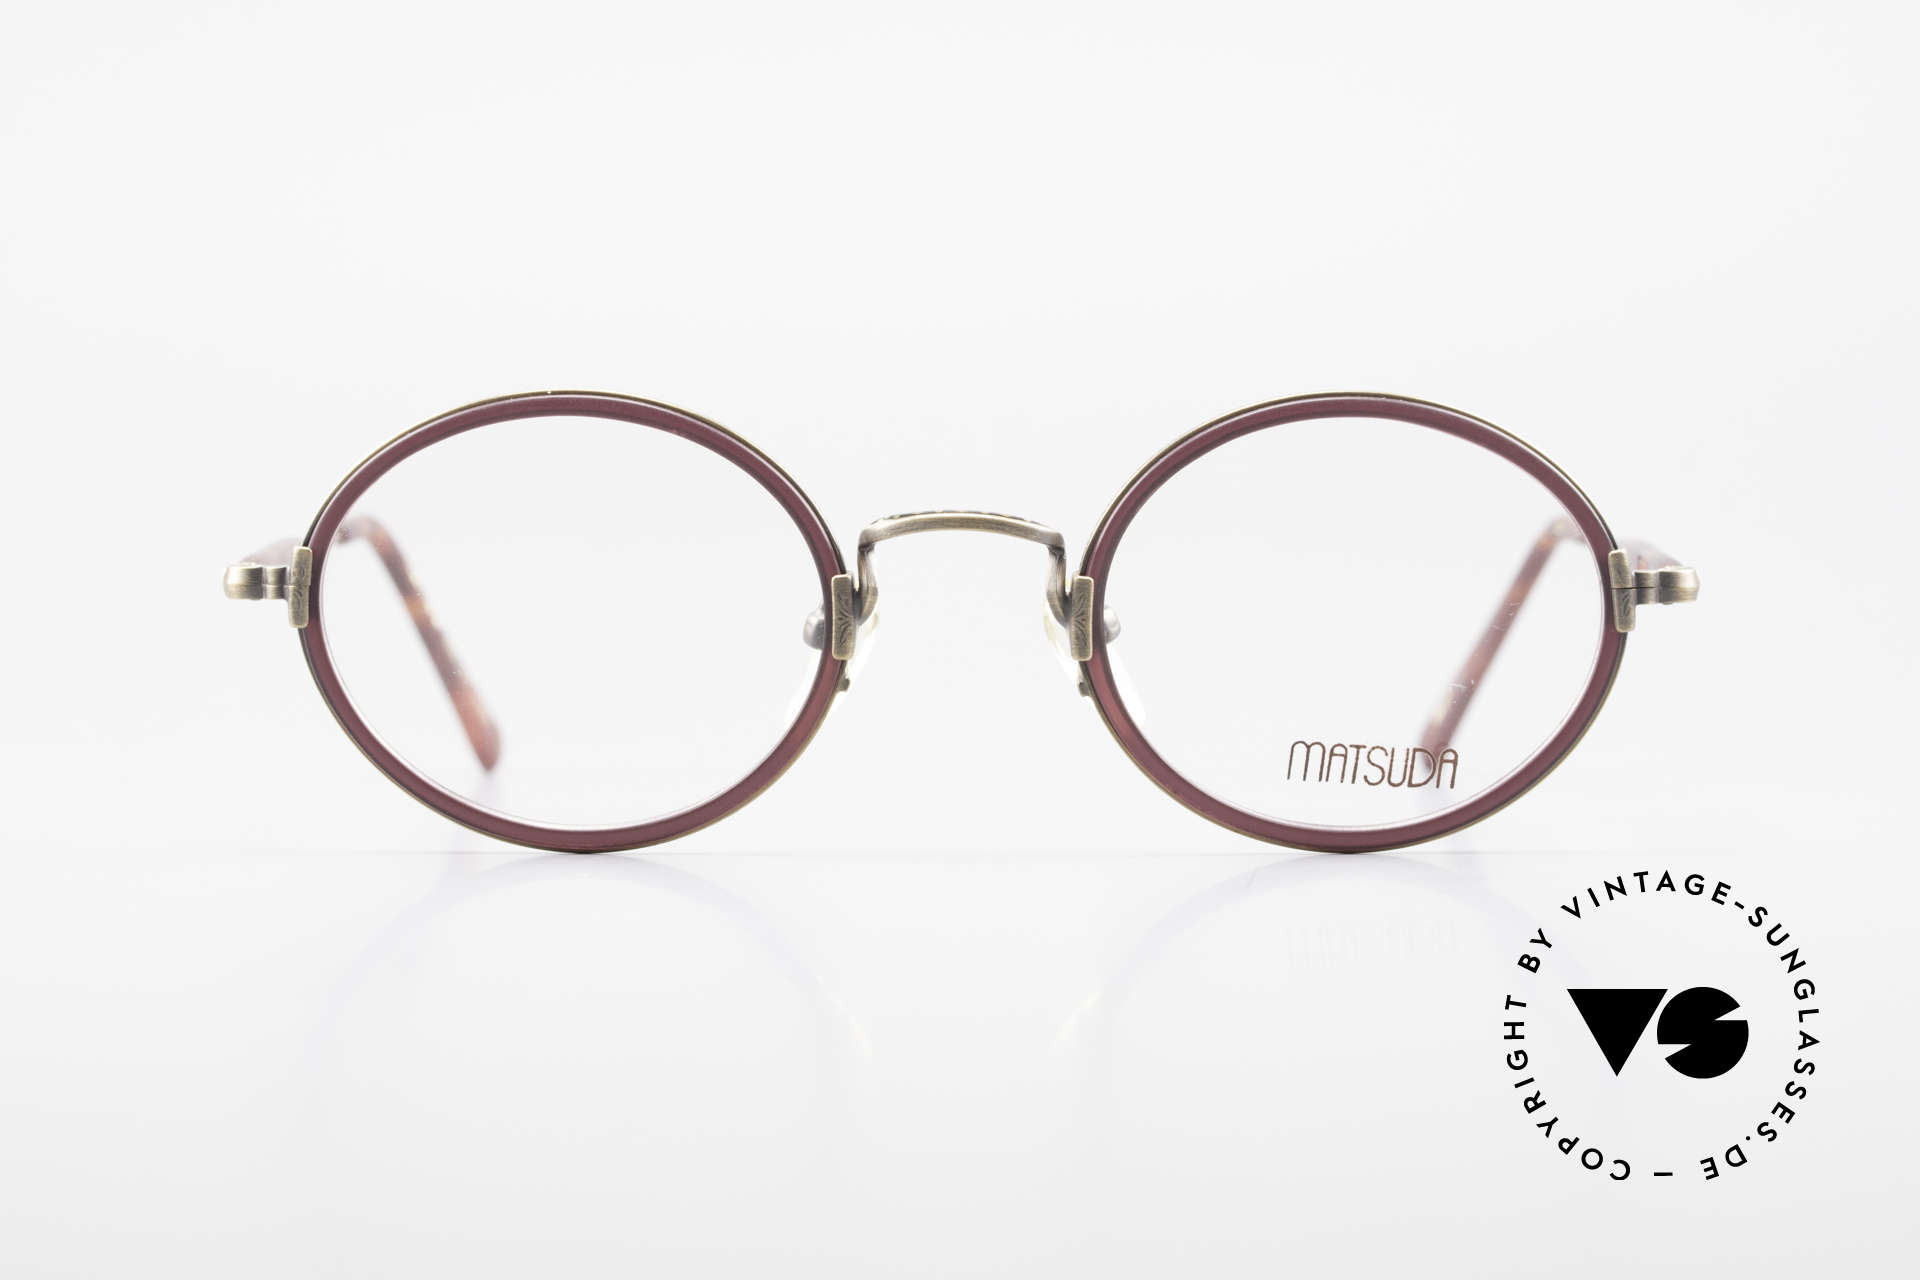 Matsuda 2834 Oval Round 90's Eyeglass-Frame, MATSUDA = a synonym for elaborate craftsmanship, Made for Men and Women